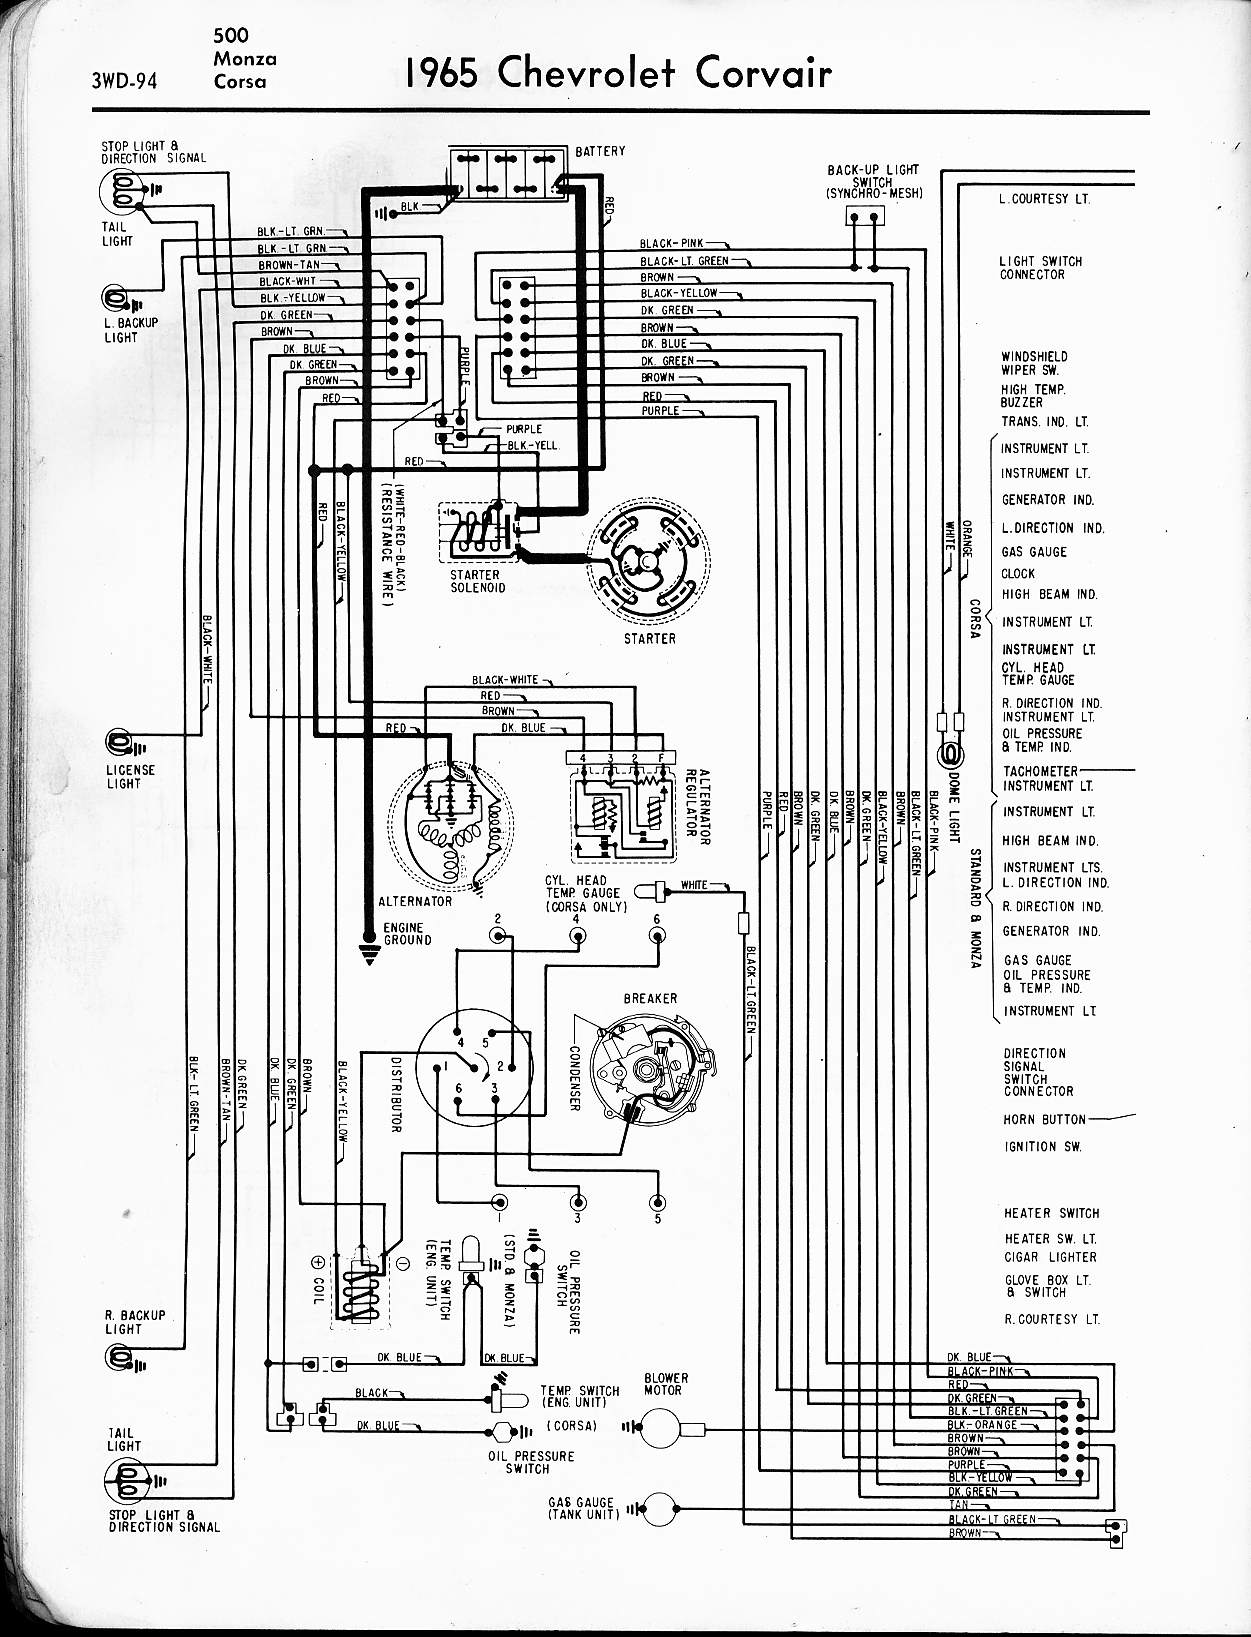 1965 Impala Ignition Wiring Diagram Content Resource Of 1966 Chevy 57 65 Diagrams Rh Oldcarmanualproject Com 2000